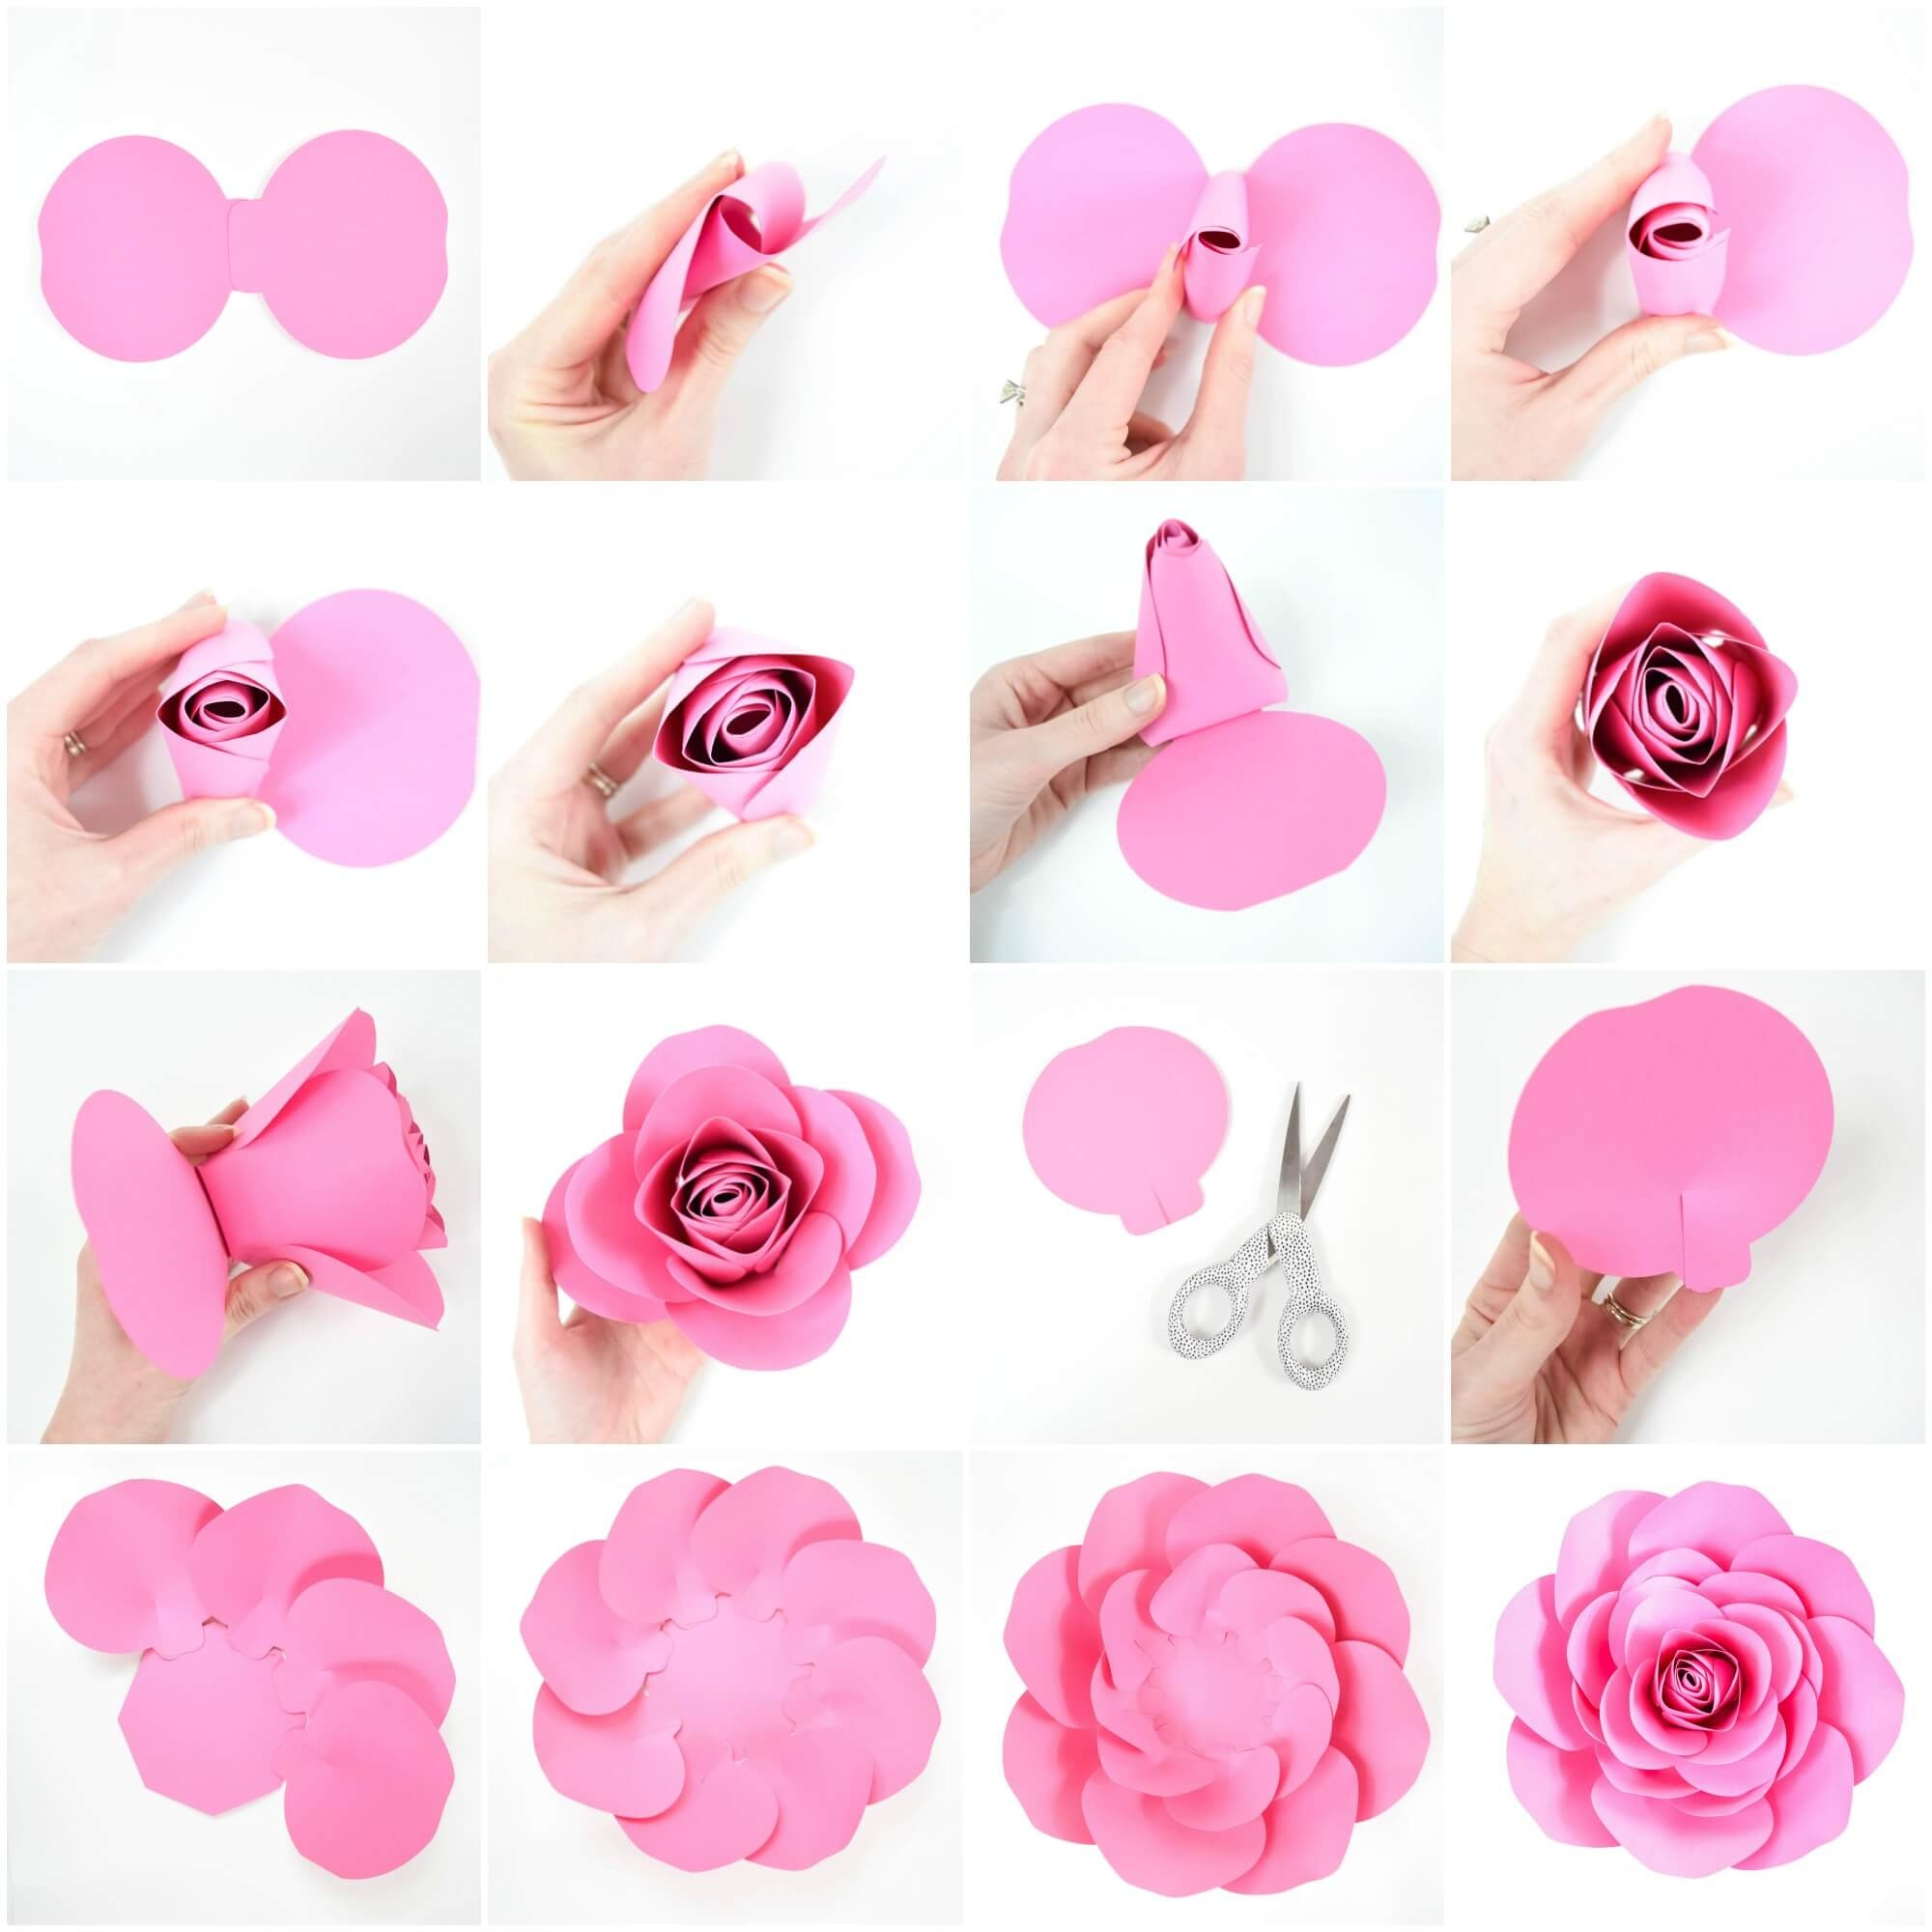 Free Large Paper Rose Template: Diy Camellia Rose Tutorial - Free Printable Paper Flower Templates